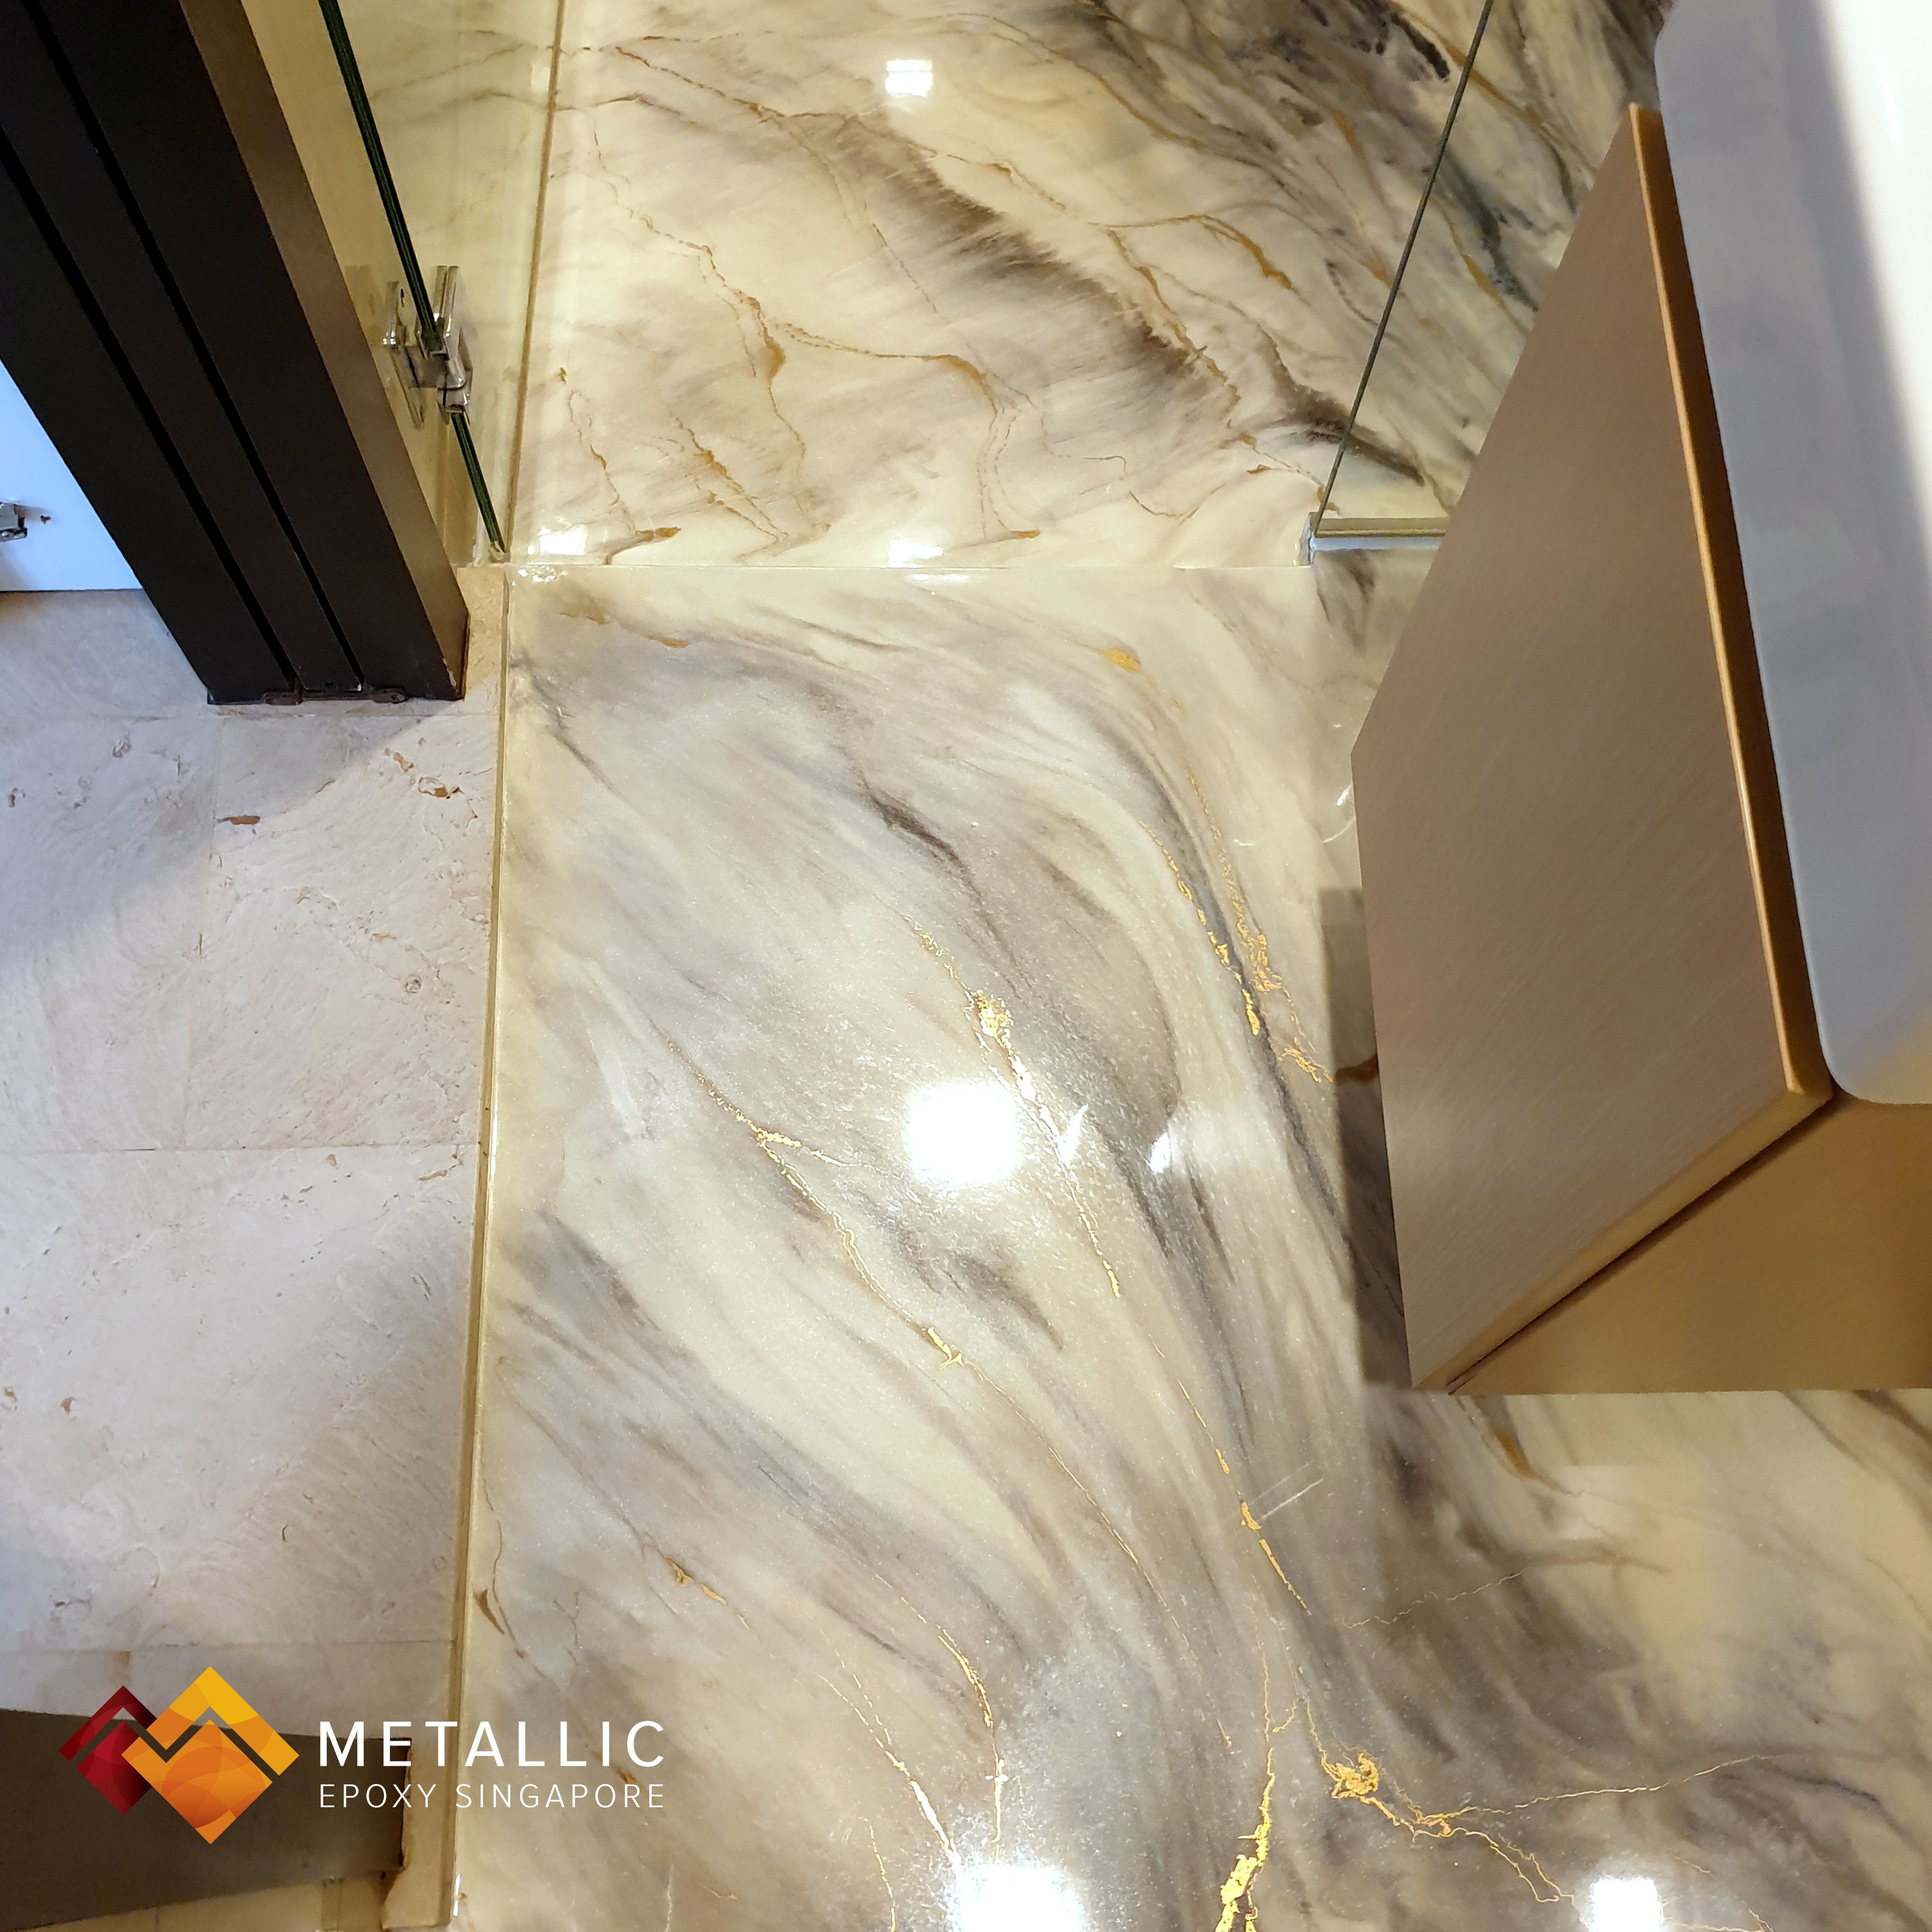 A Gorgeous Marble Like Design With Gold Veins On A Mixed Beige Base Sprucing Up This Guest Bathroom Metal Basement Design Floor Design Bathroom Remodel Idea